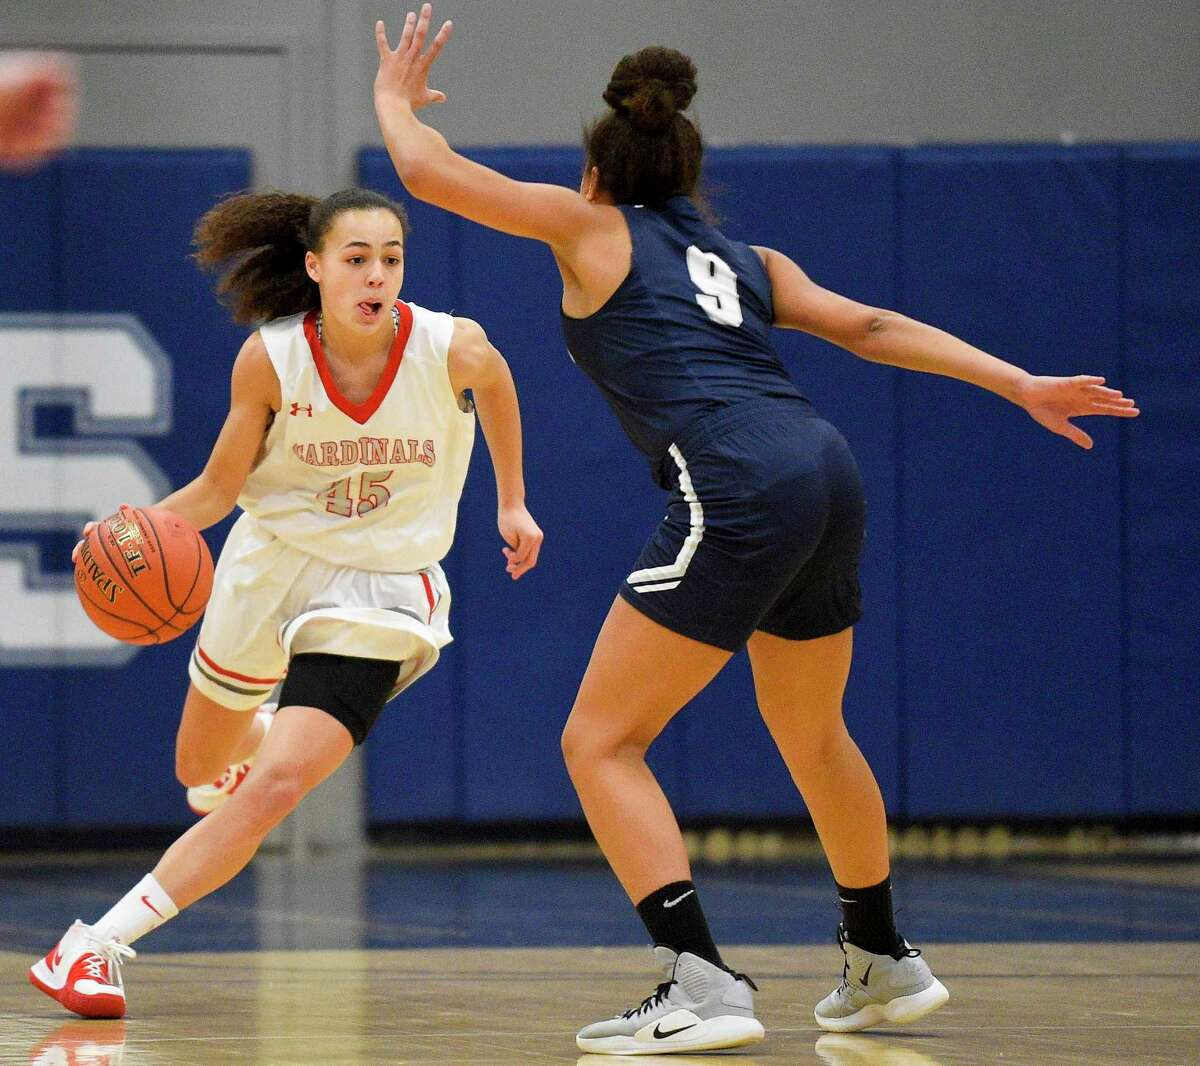 Greenwich's Makenzie Nelson (45) drives up the court against Staples Nicole Holmes (9) in the first half of an FCIAC girls basketball game at Staples High School on Jan. 24, 2020 in Westport, Connecticut. Staples defeated Greenwich 60-44.